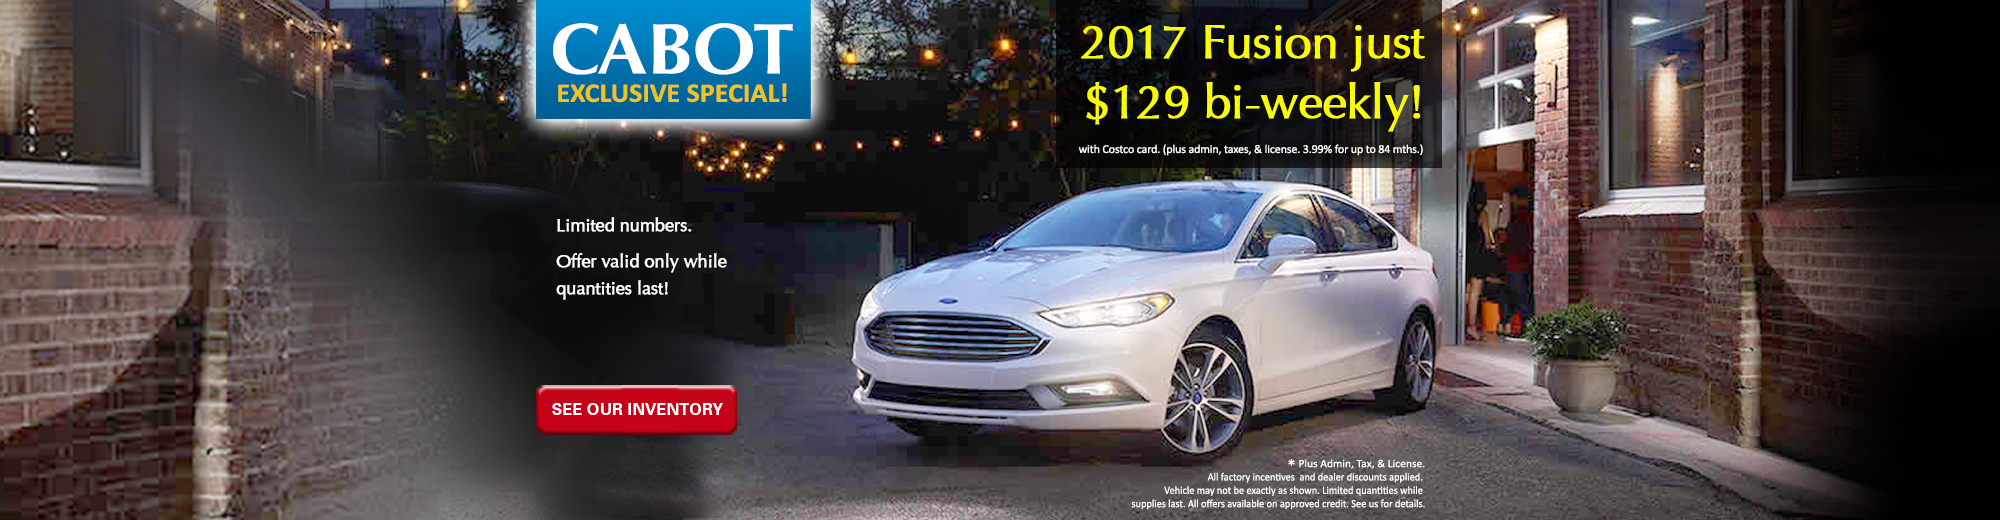 2017 Fusion for just $129 bi-weekly!